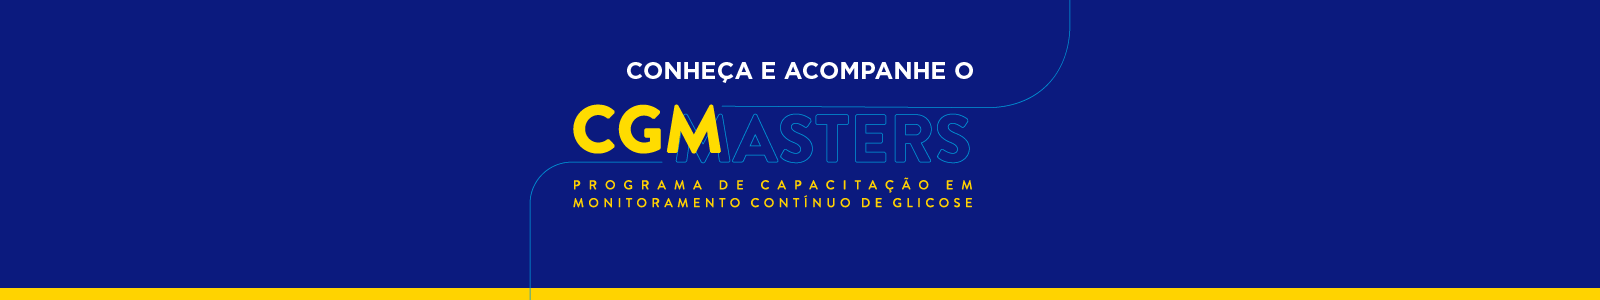 CG masters-banners 2-geral cópia